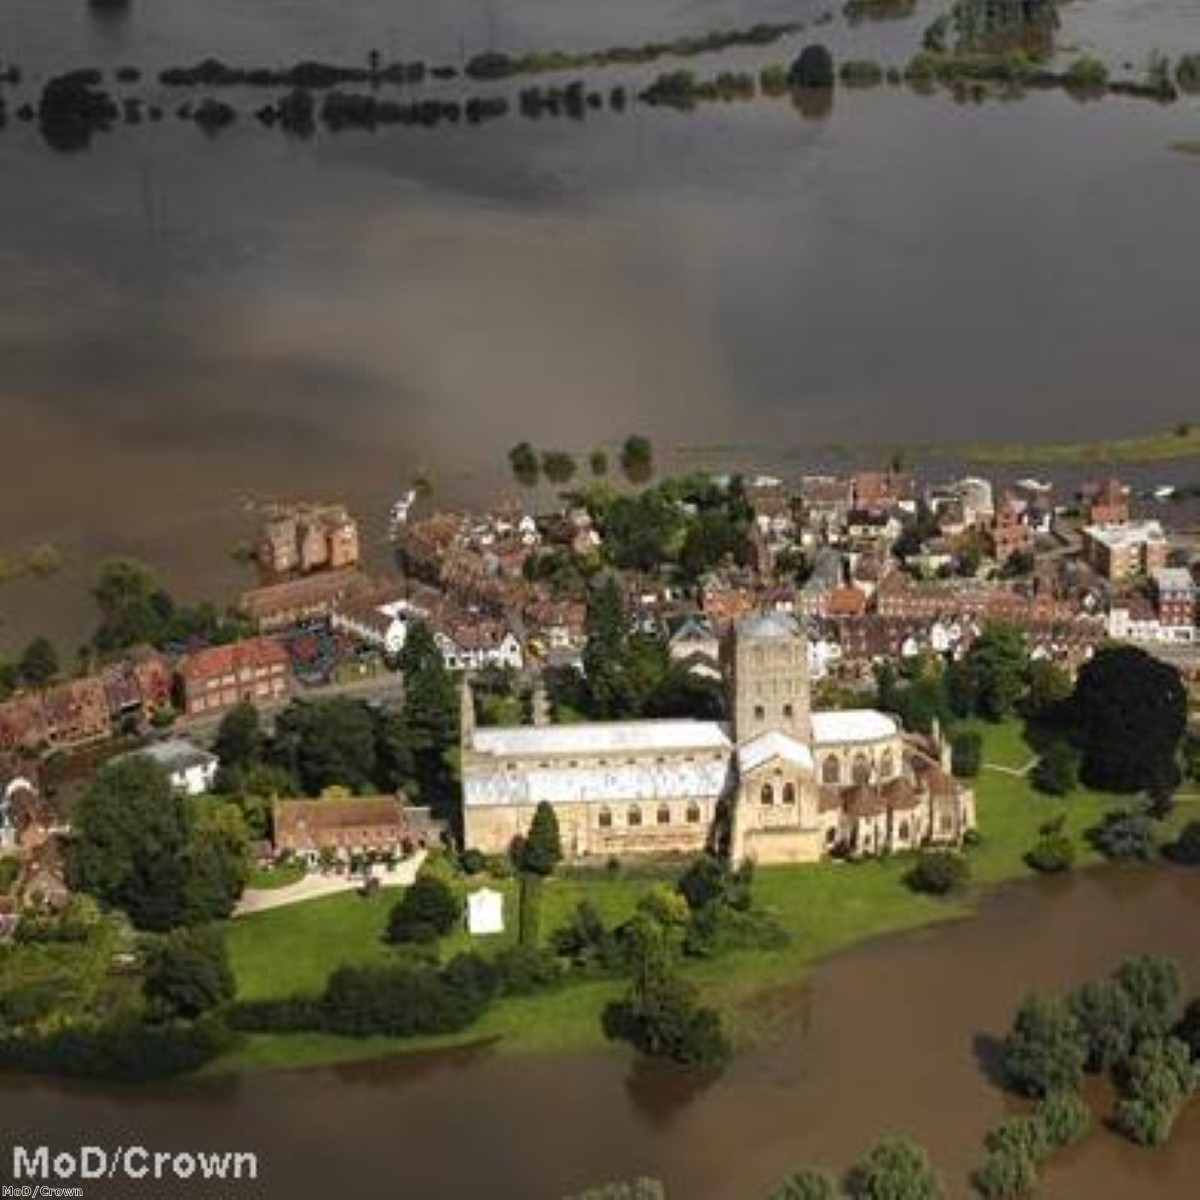 Tewkesbury suffered extensive damage in the summer 2007 floods